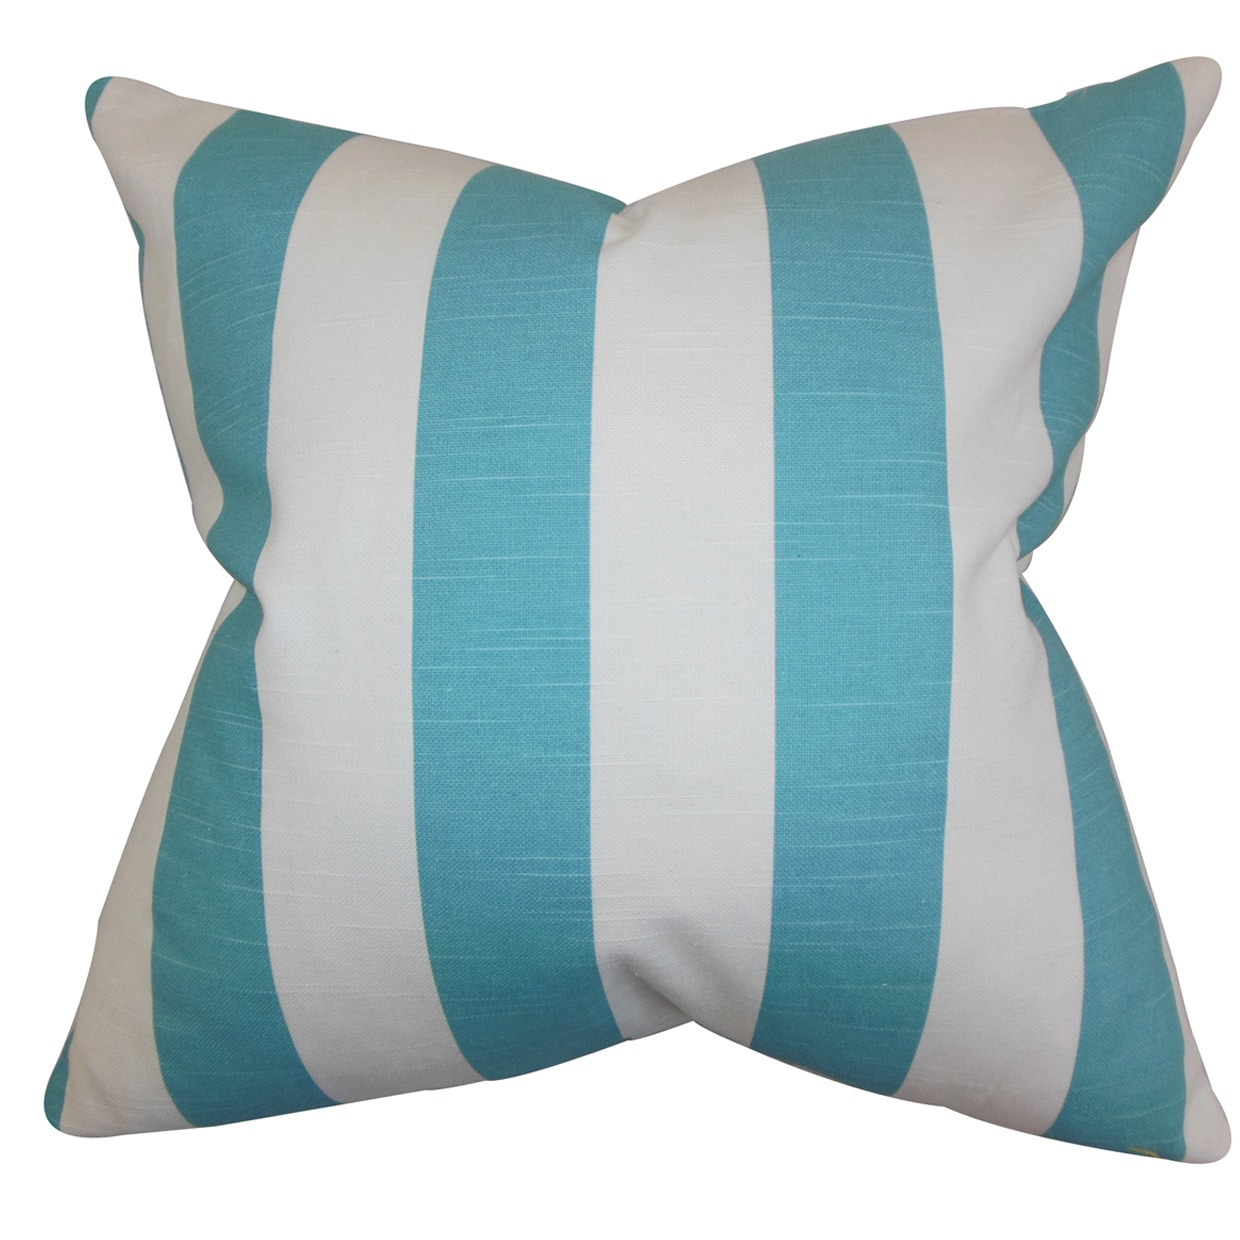 The Pillow Collection Acantha Stripes 24-inch Down Feather Throw Pillow Coastal Blue